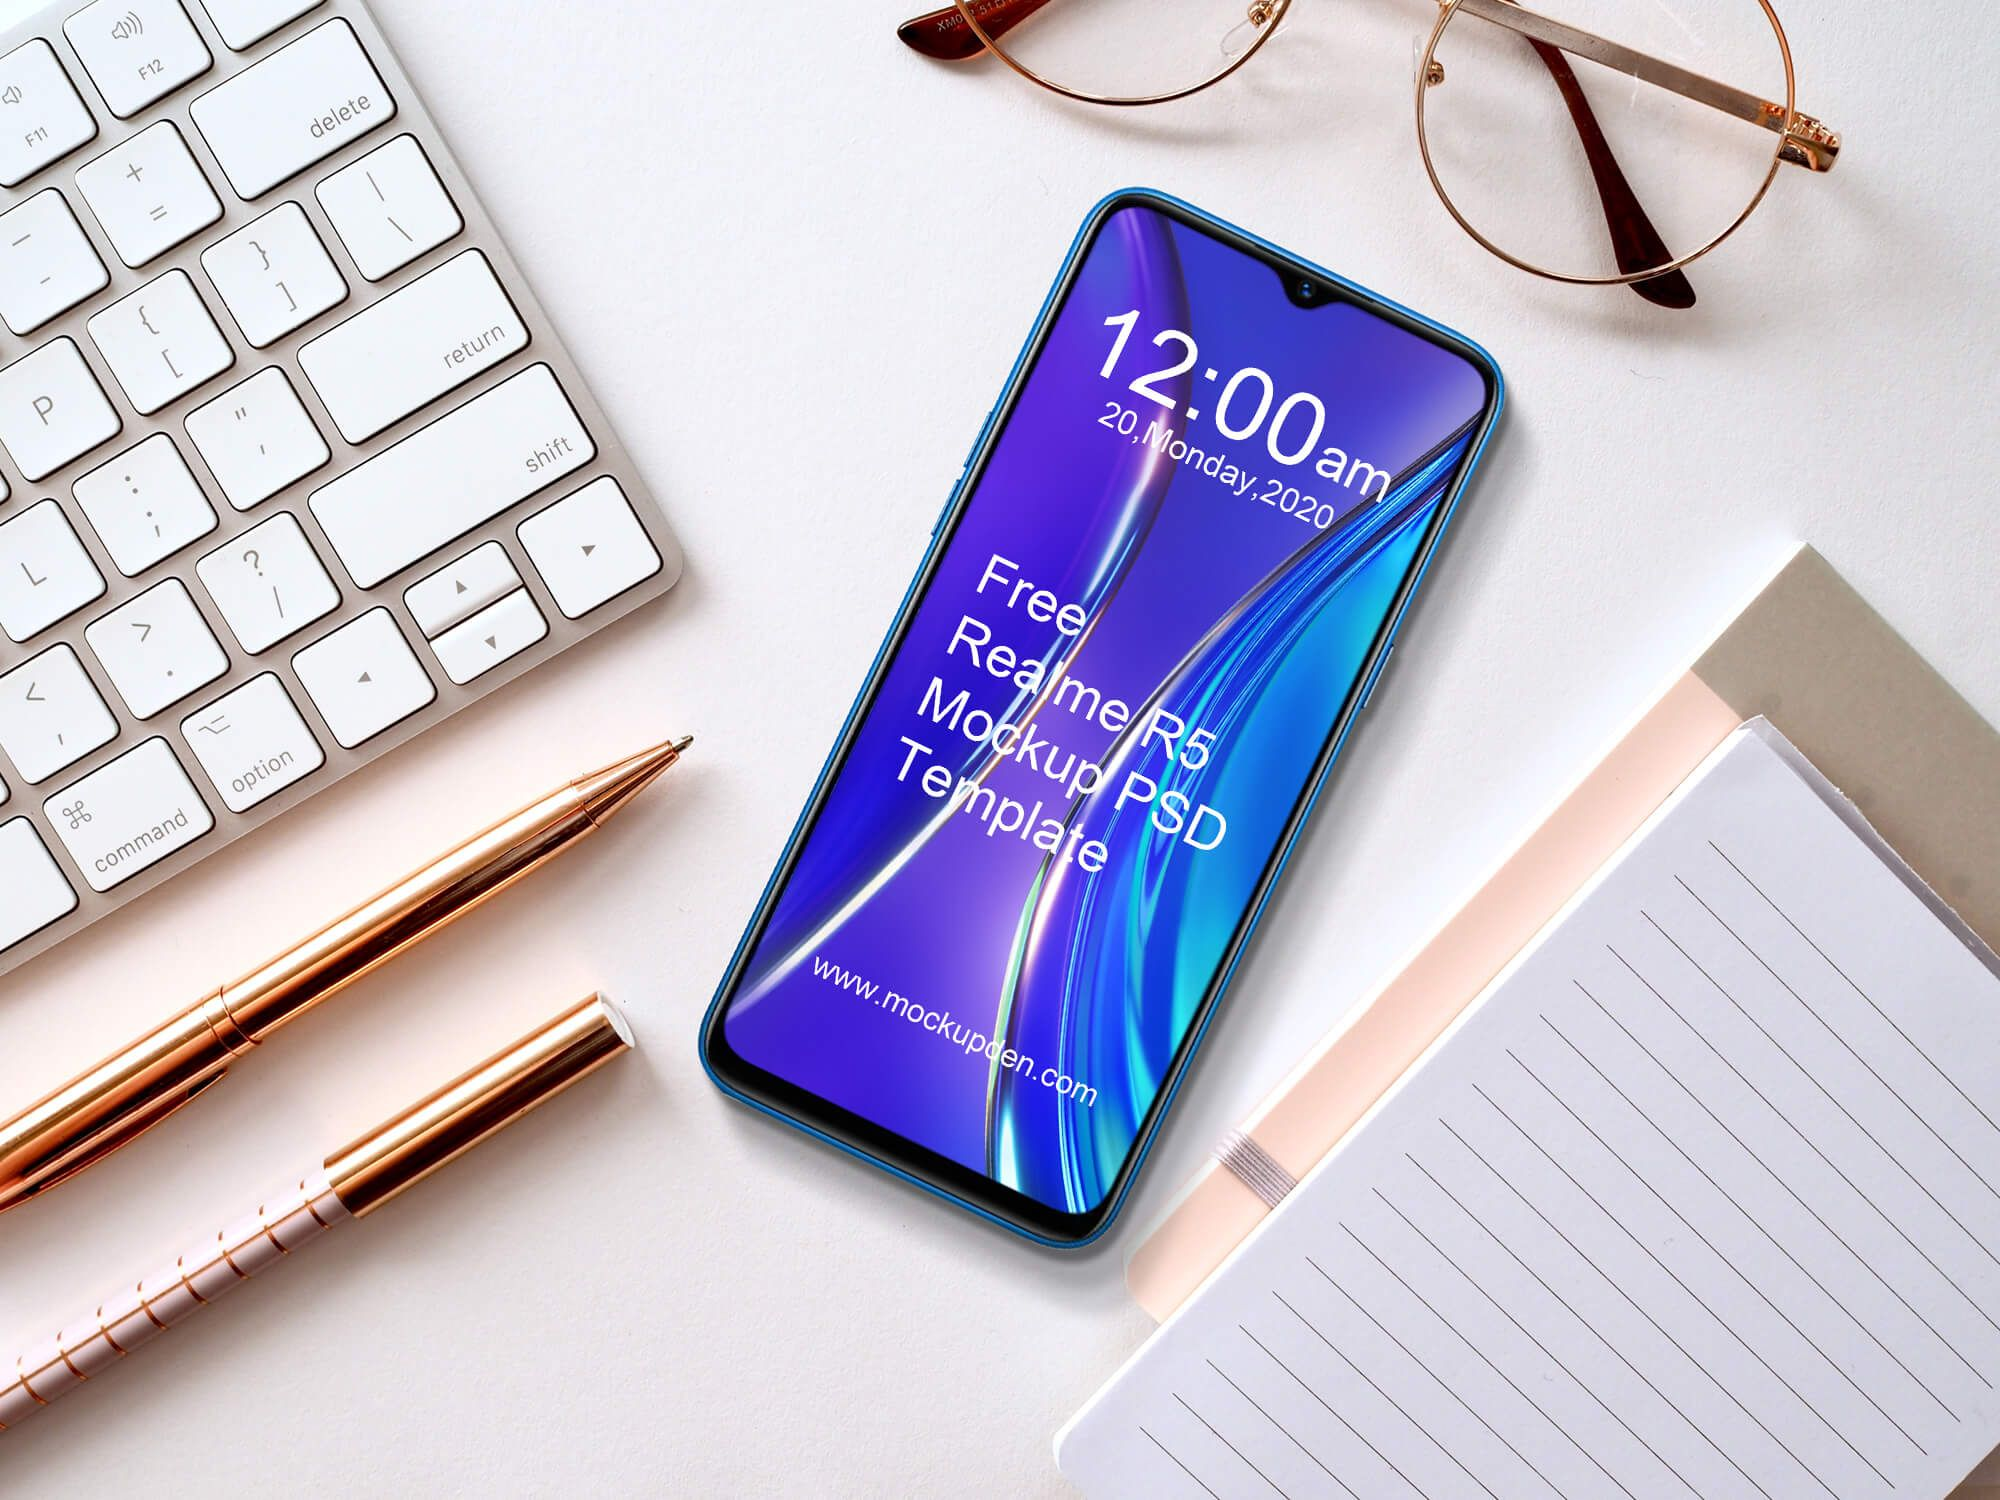 Free Realme R5 Phone Mockup PSD Template in 2020 Phone